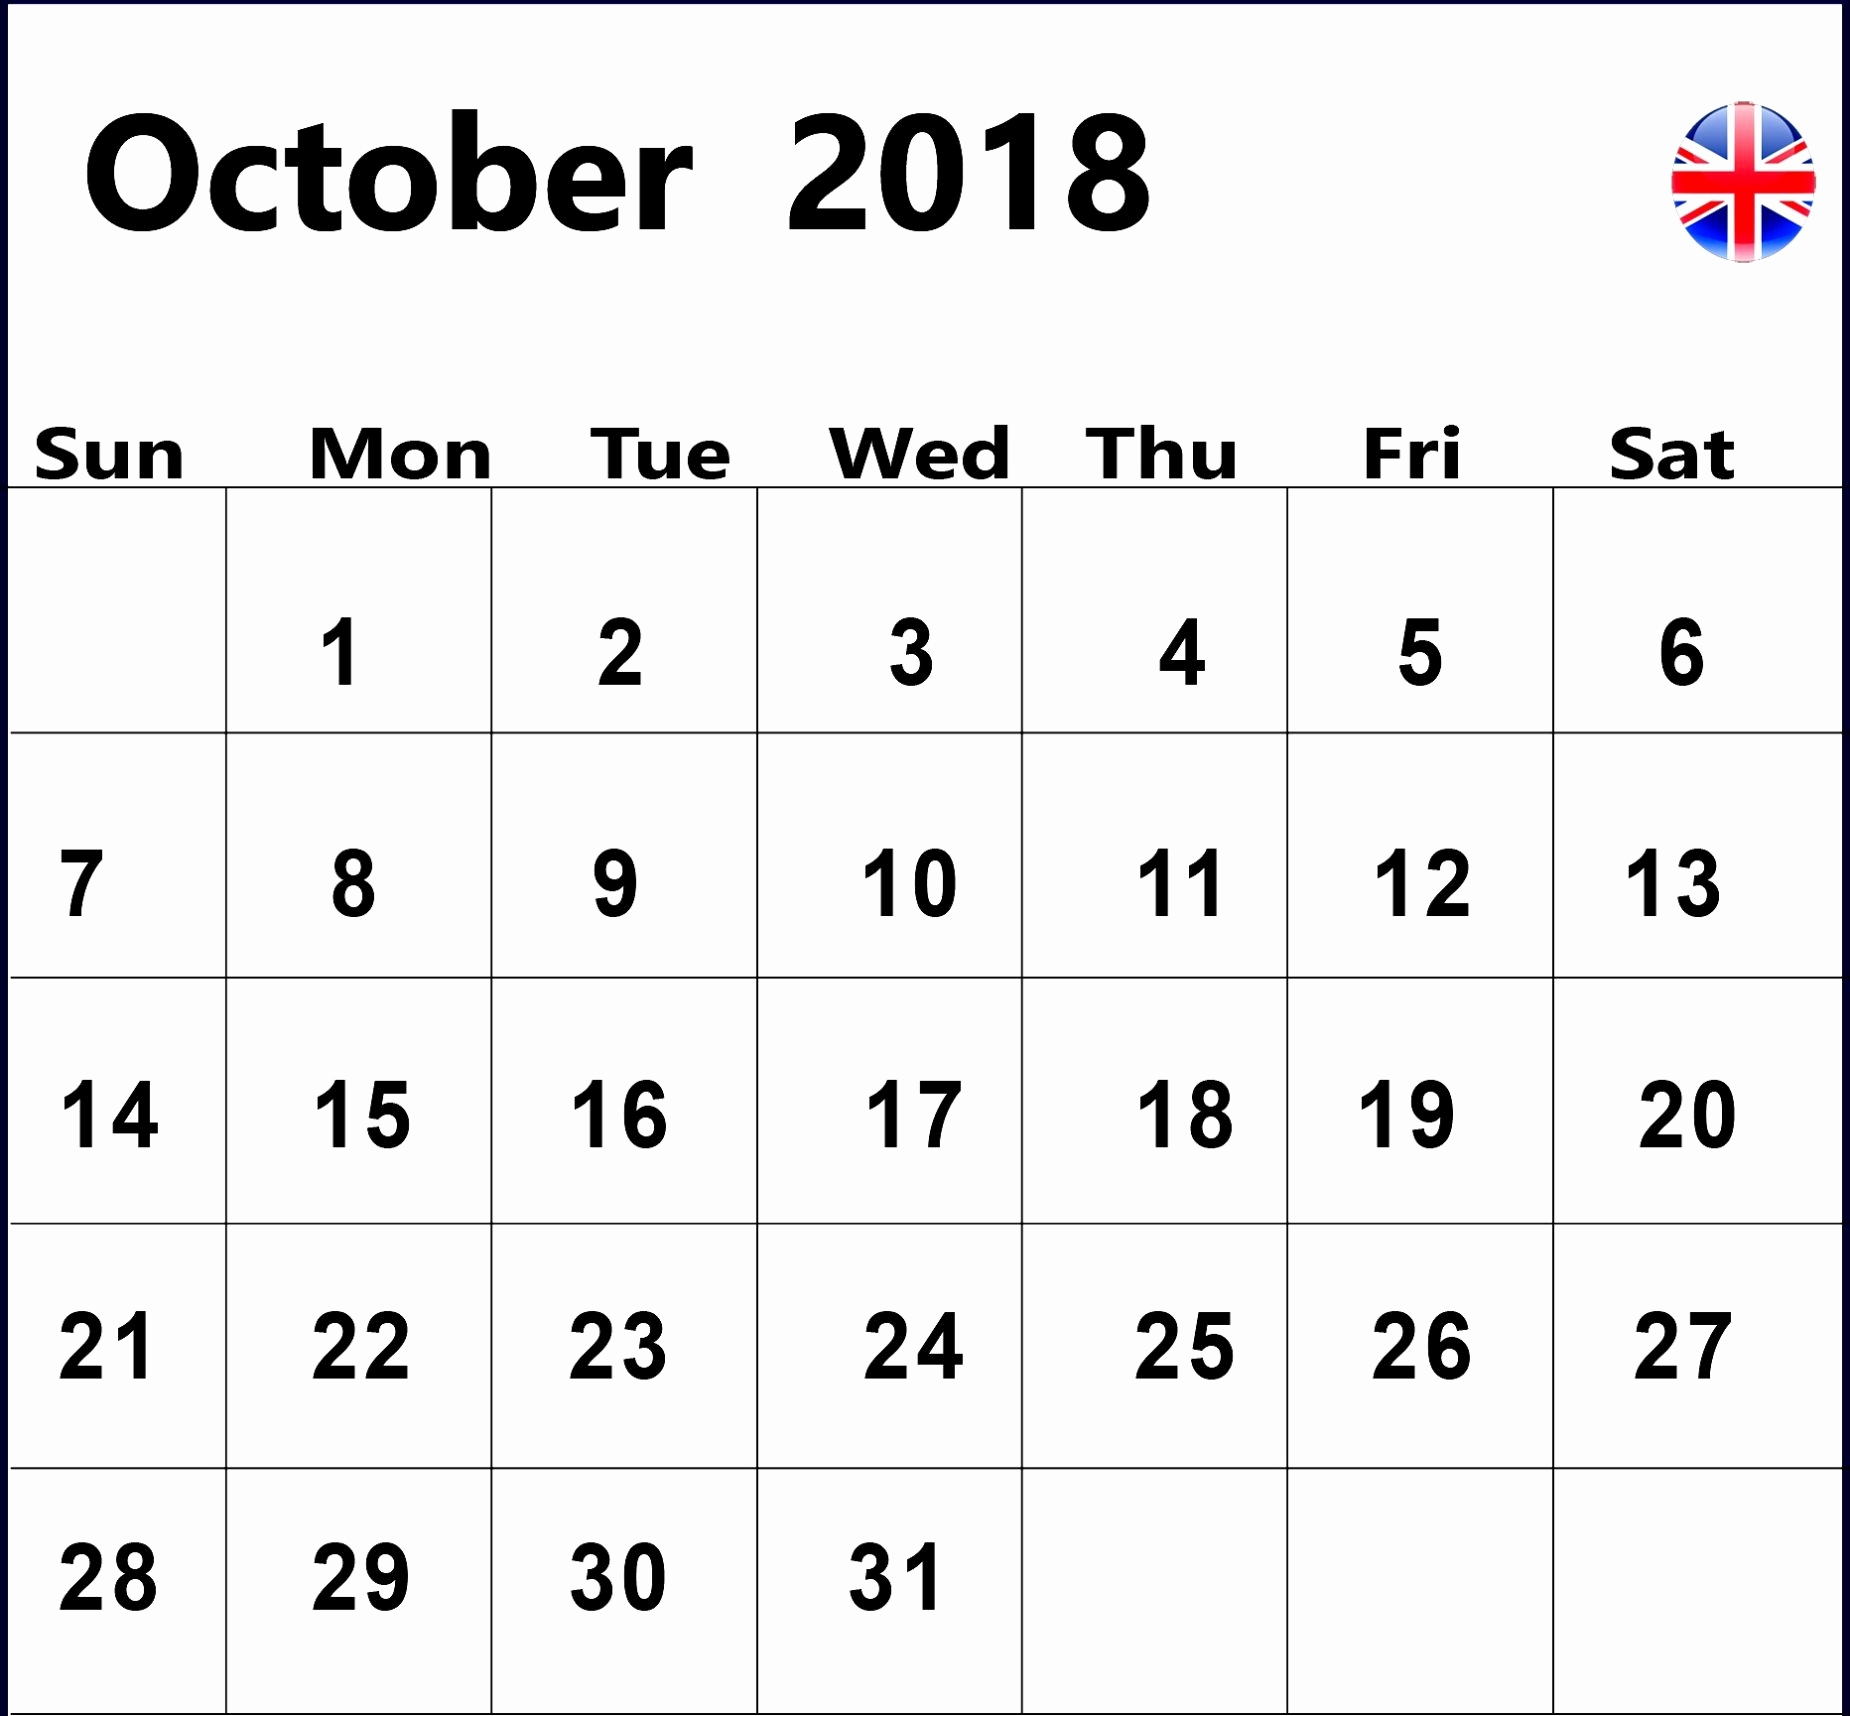 october 2018 calendar with holidays uk october 2018 calendar uk October 2018 Calendar Holidays USA erdferdf